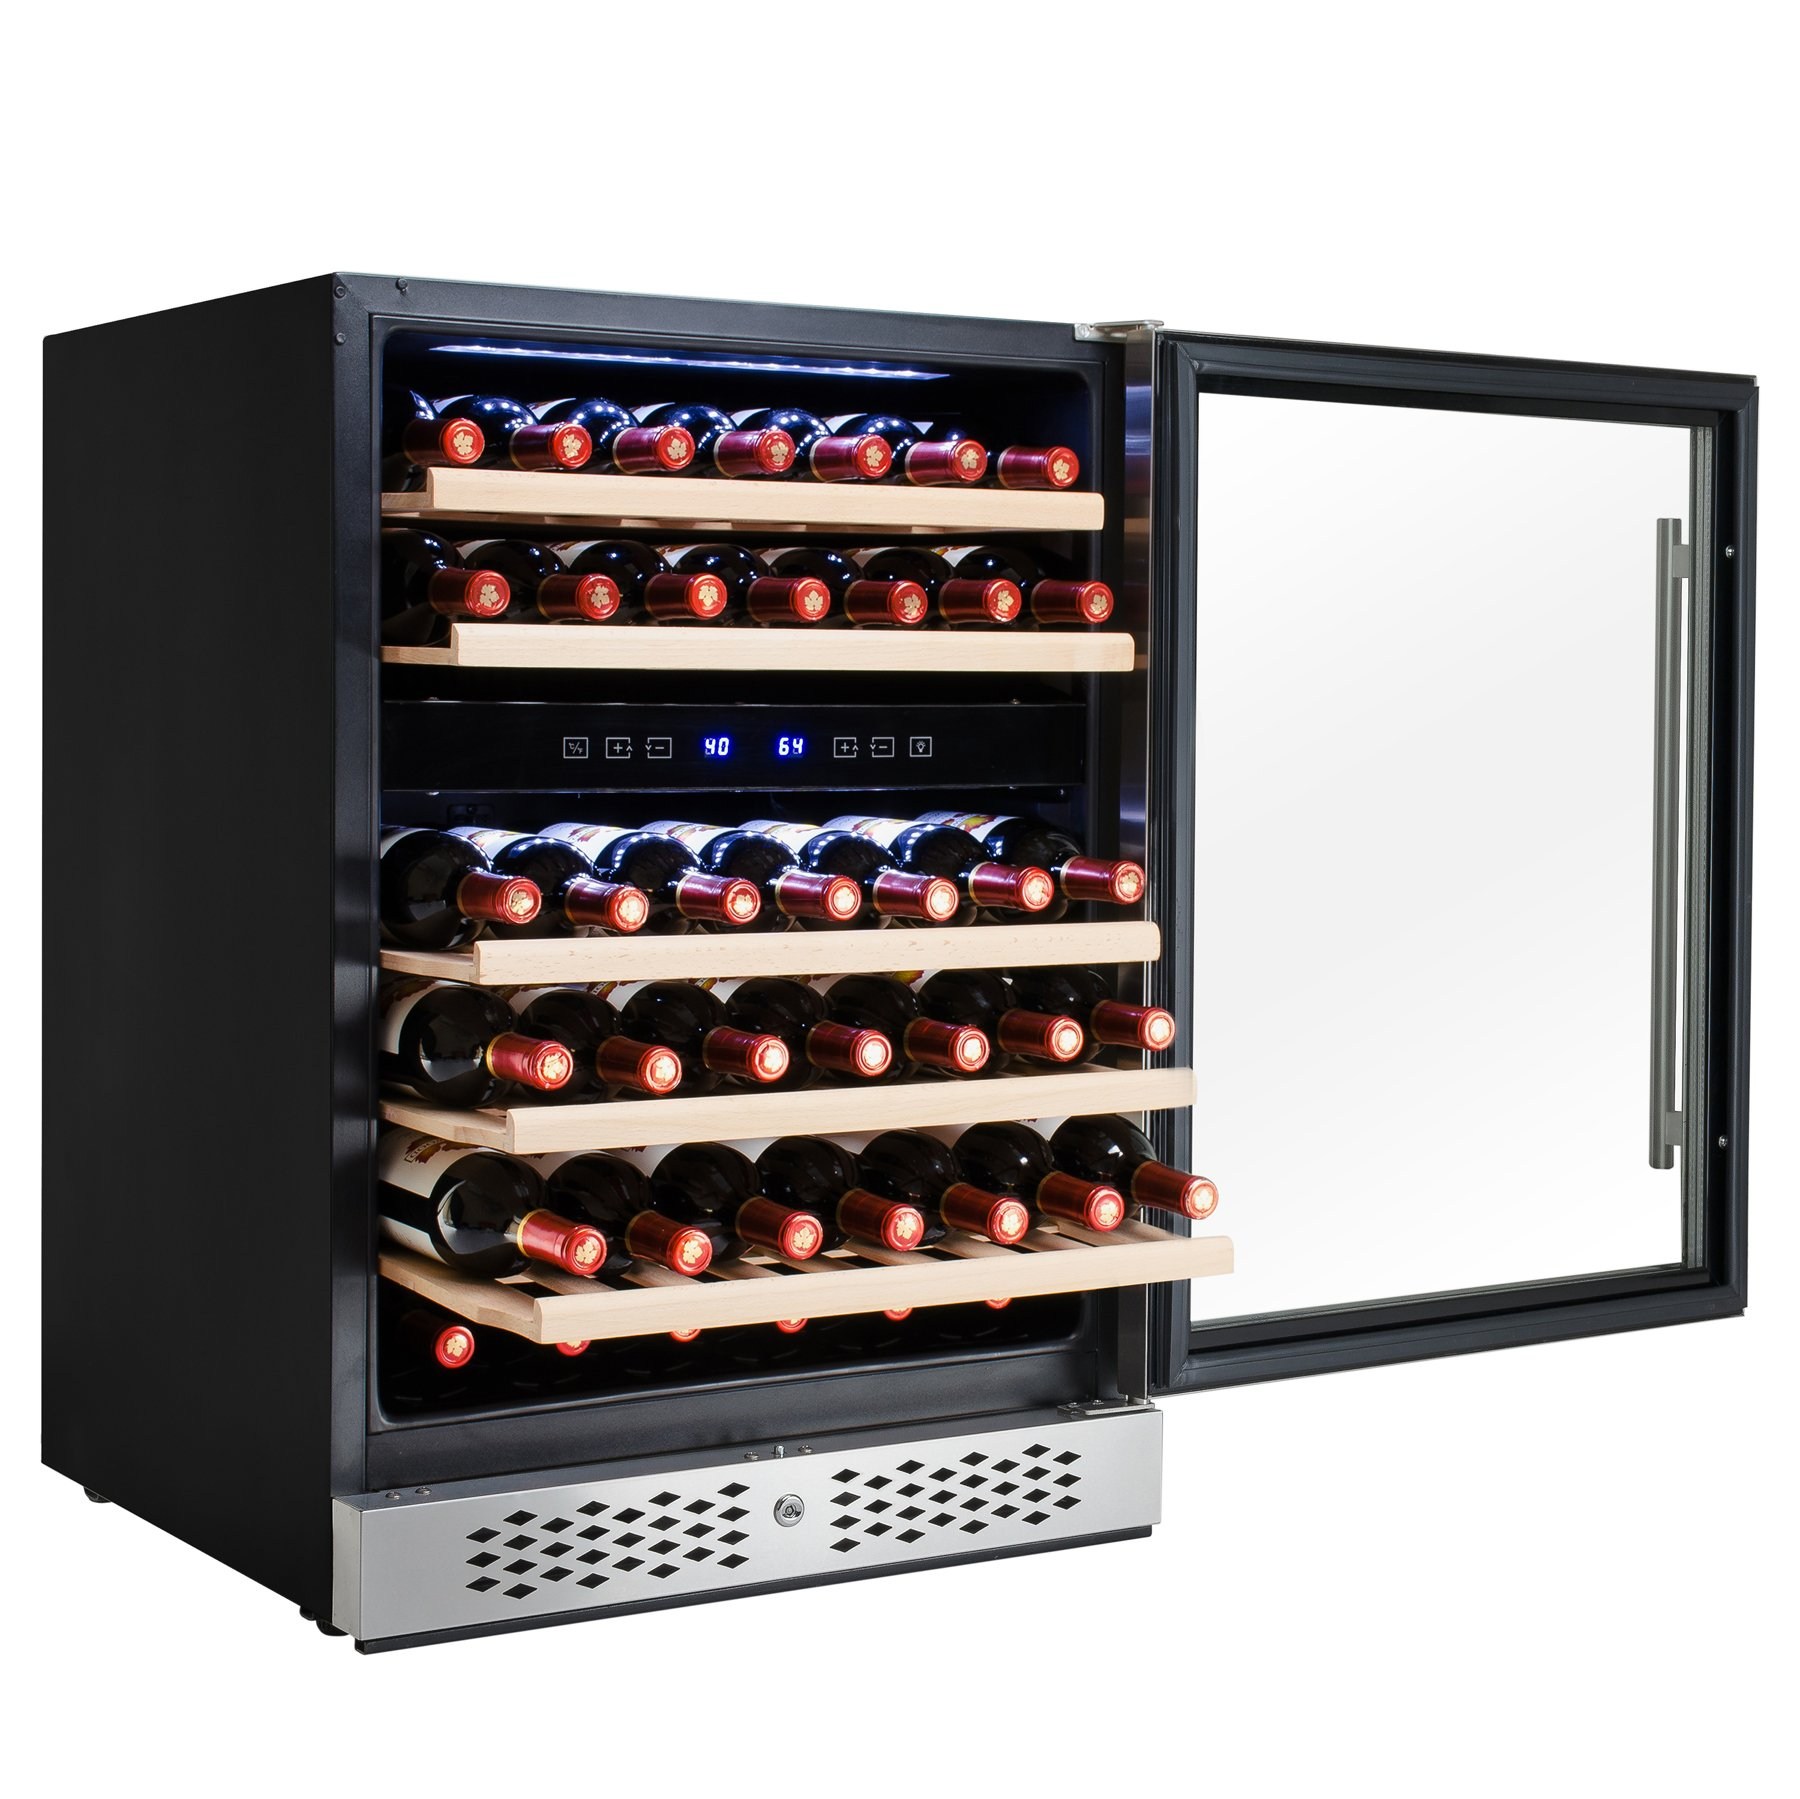 AKDY 46 Bottles Dual Zone Adjustable Touch Control Compressor Function Freestanding Wine Cooler Chiller